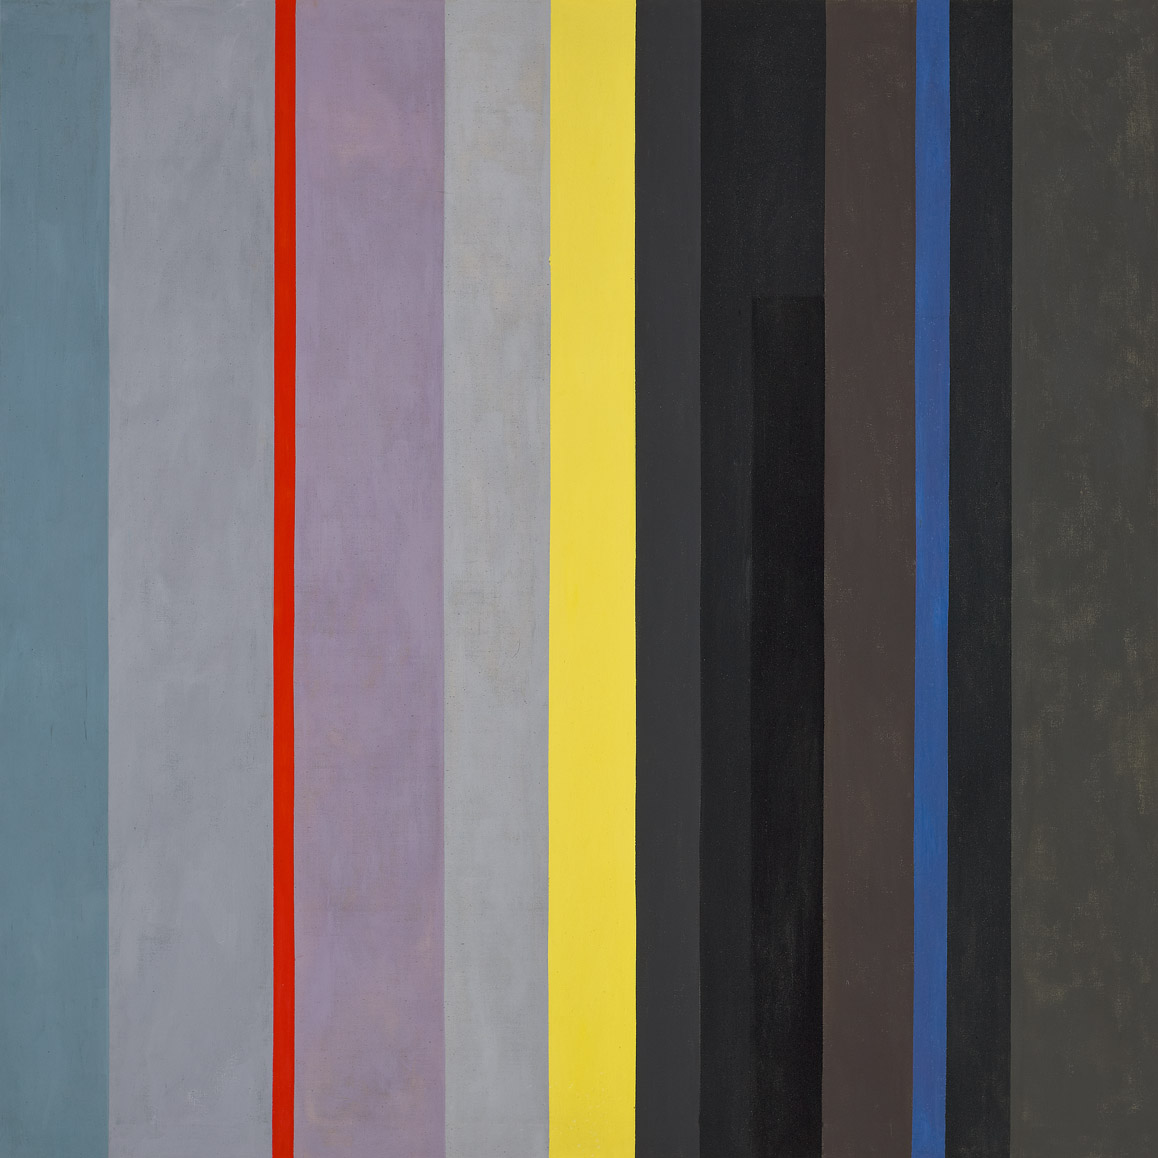 Dichotomic Organization: Stripes , 1959  oil on canvas 70 x 70 inches; 177.8 x 177.8 centimeters